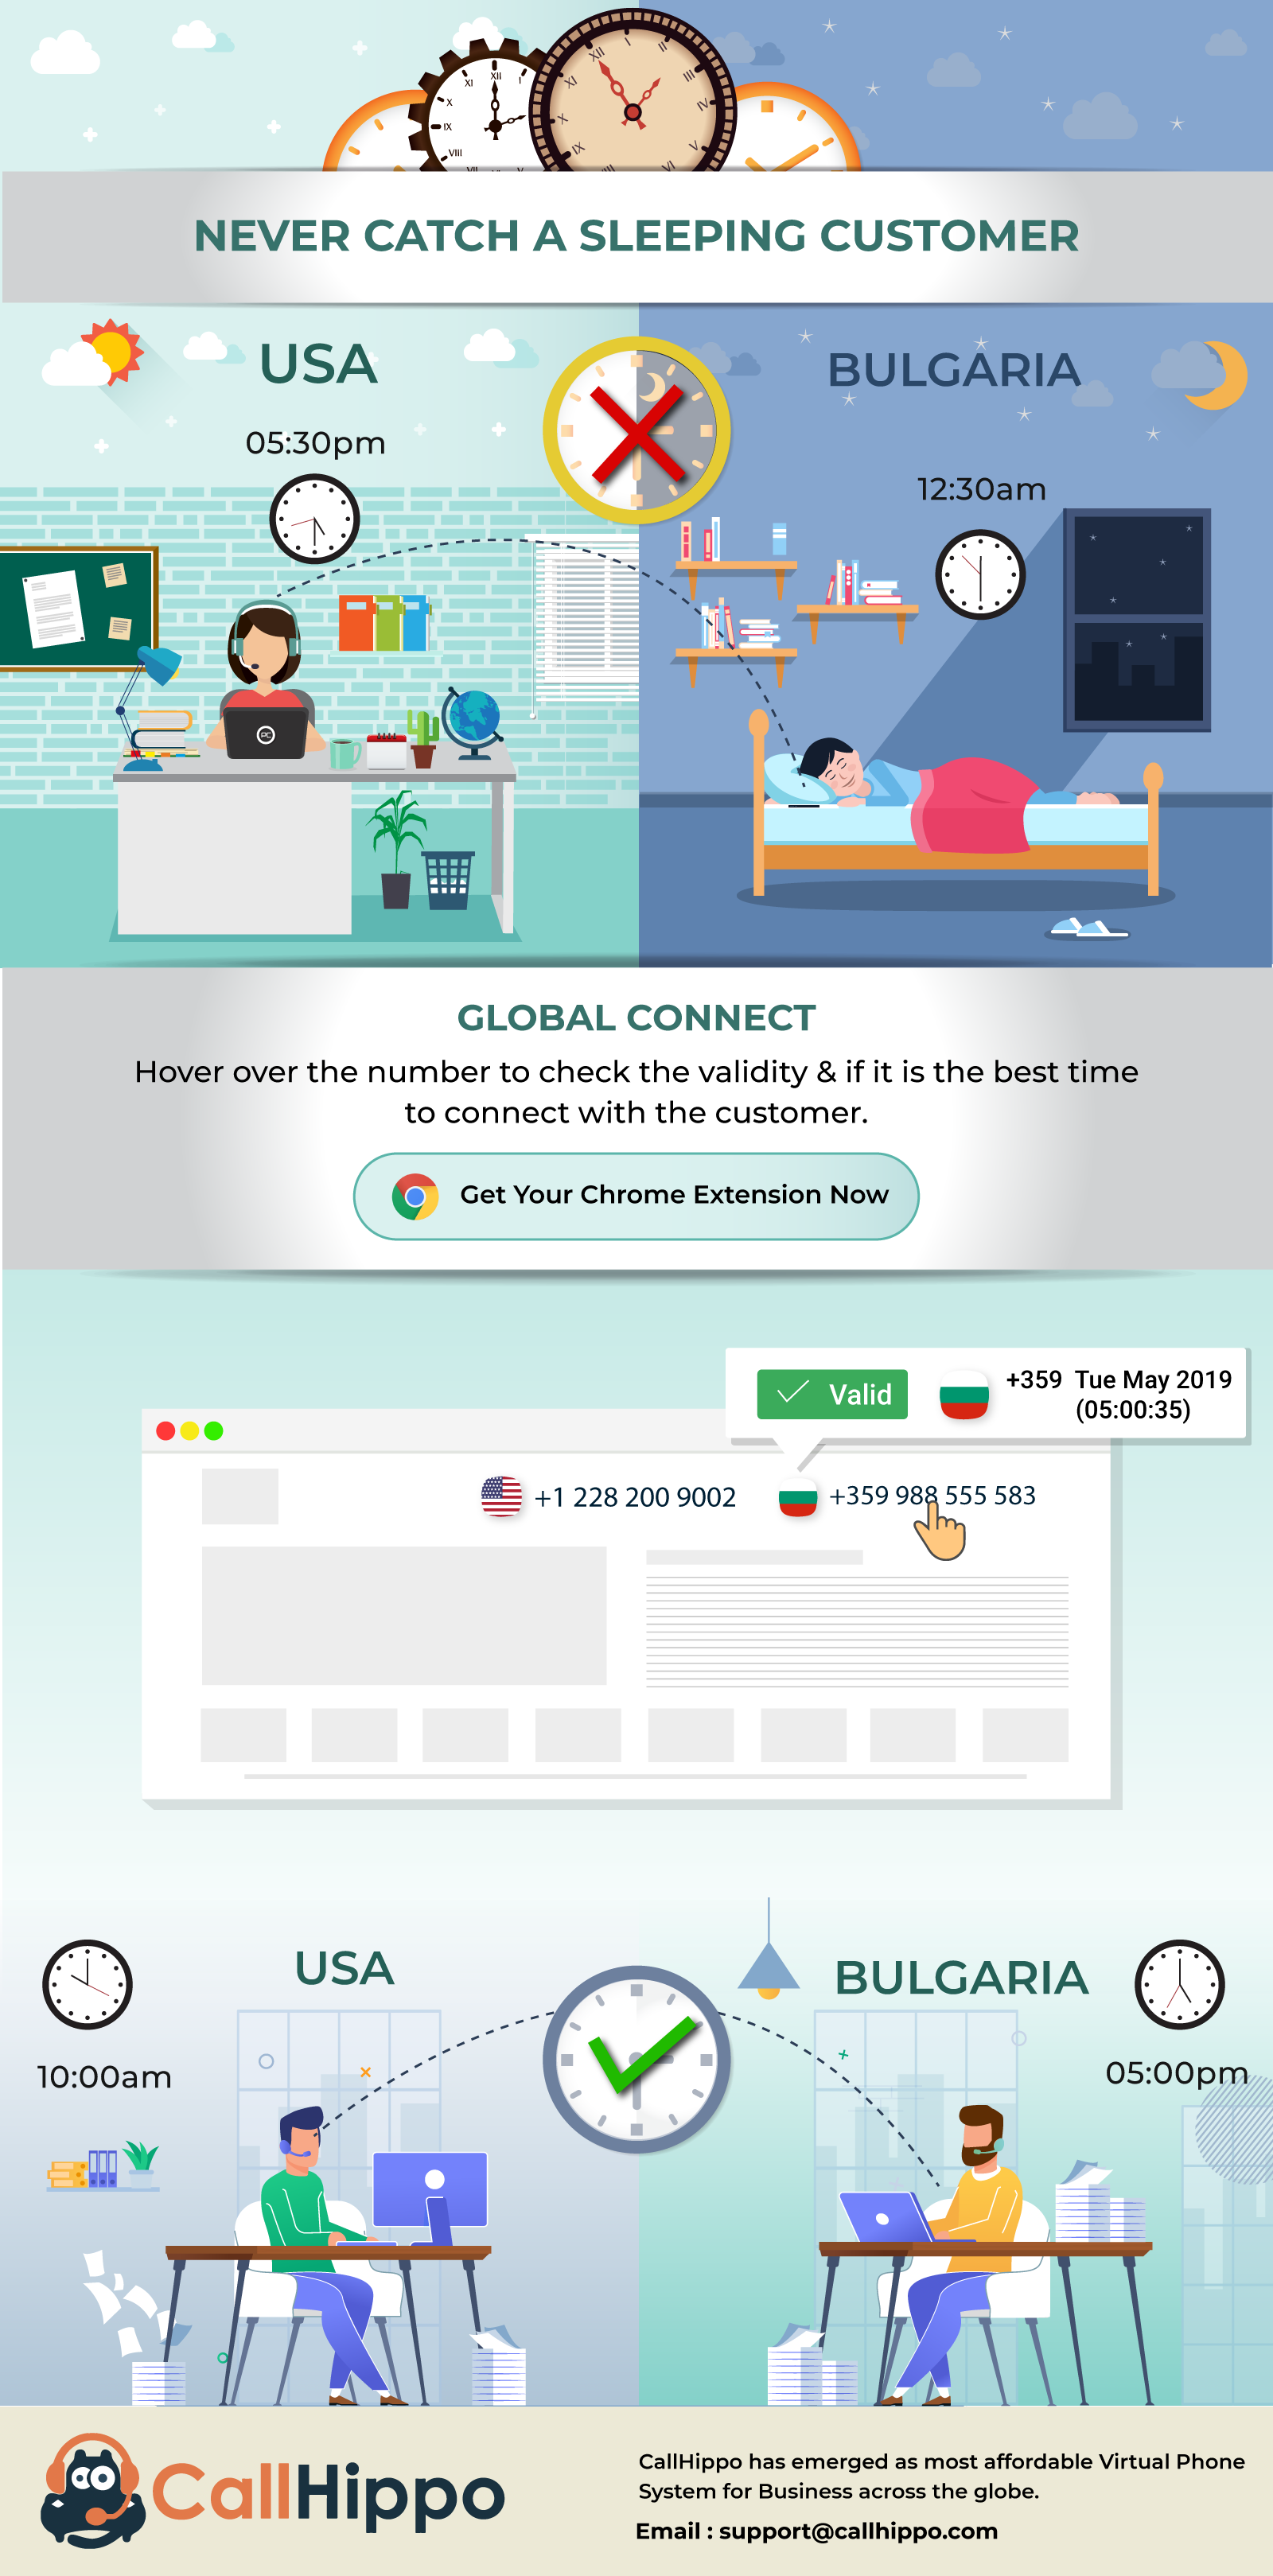 [Infographic] GLOBAL CONNECT- CallHippo